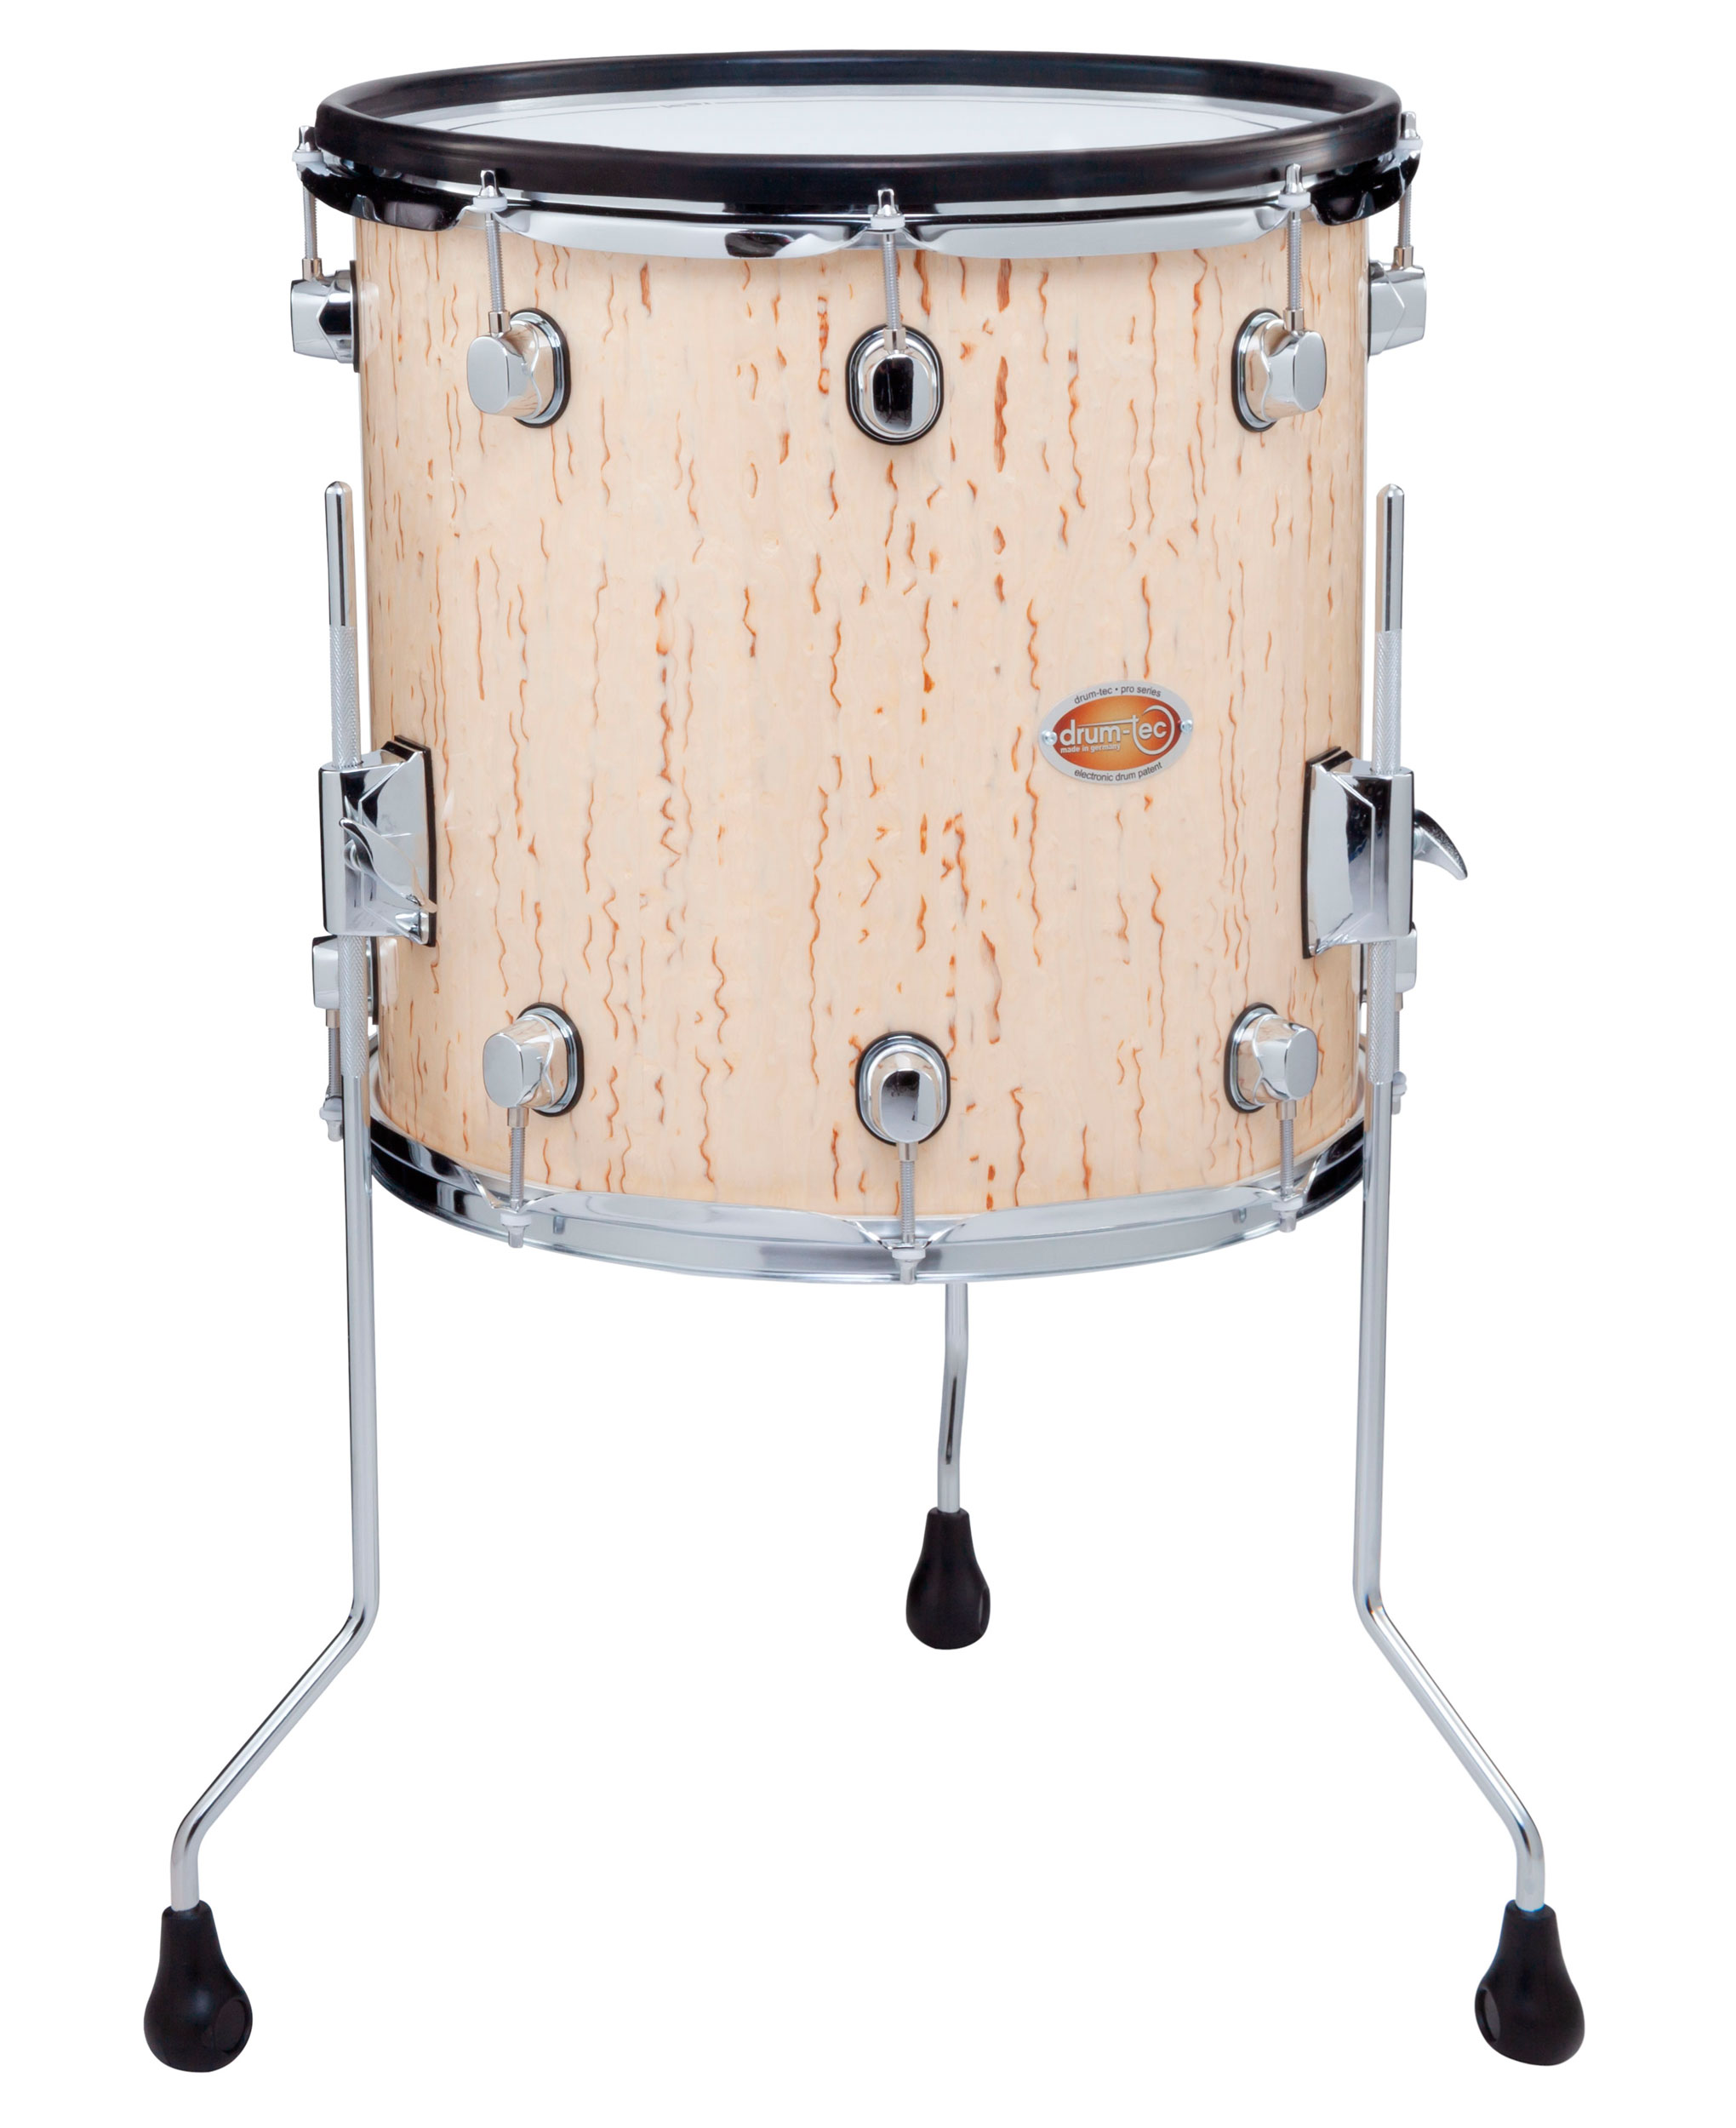 Drum Tec Pro S Floor Tom 14 X 14 Ice Birch Drum Tec